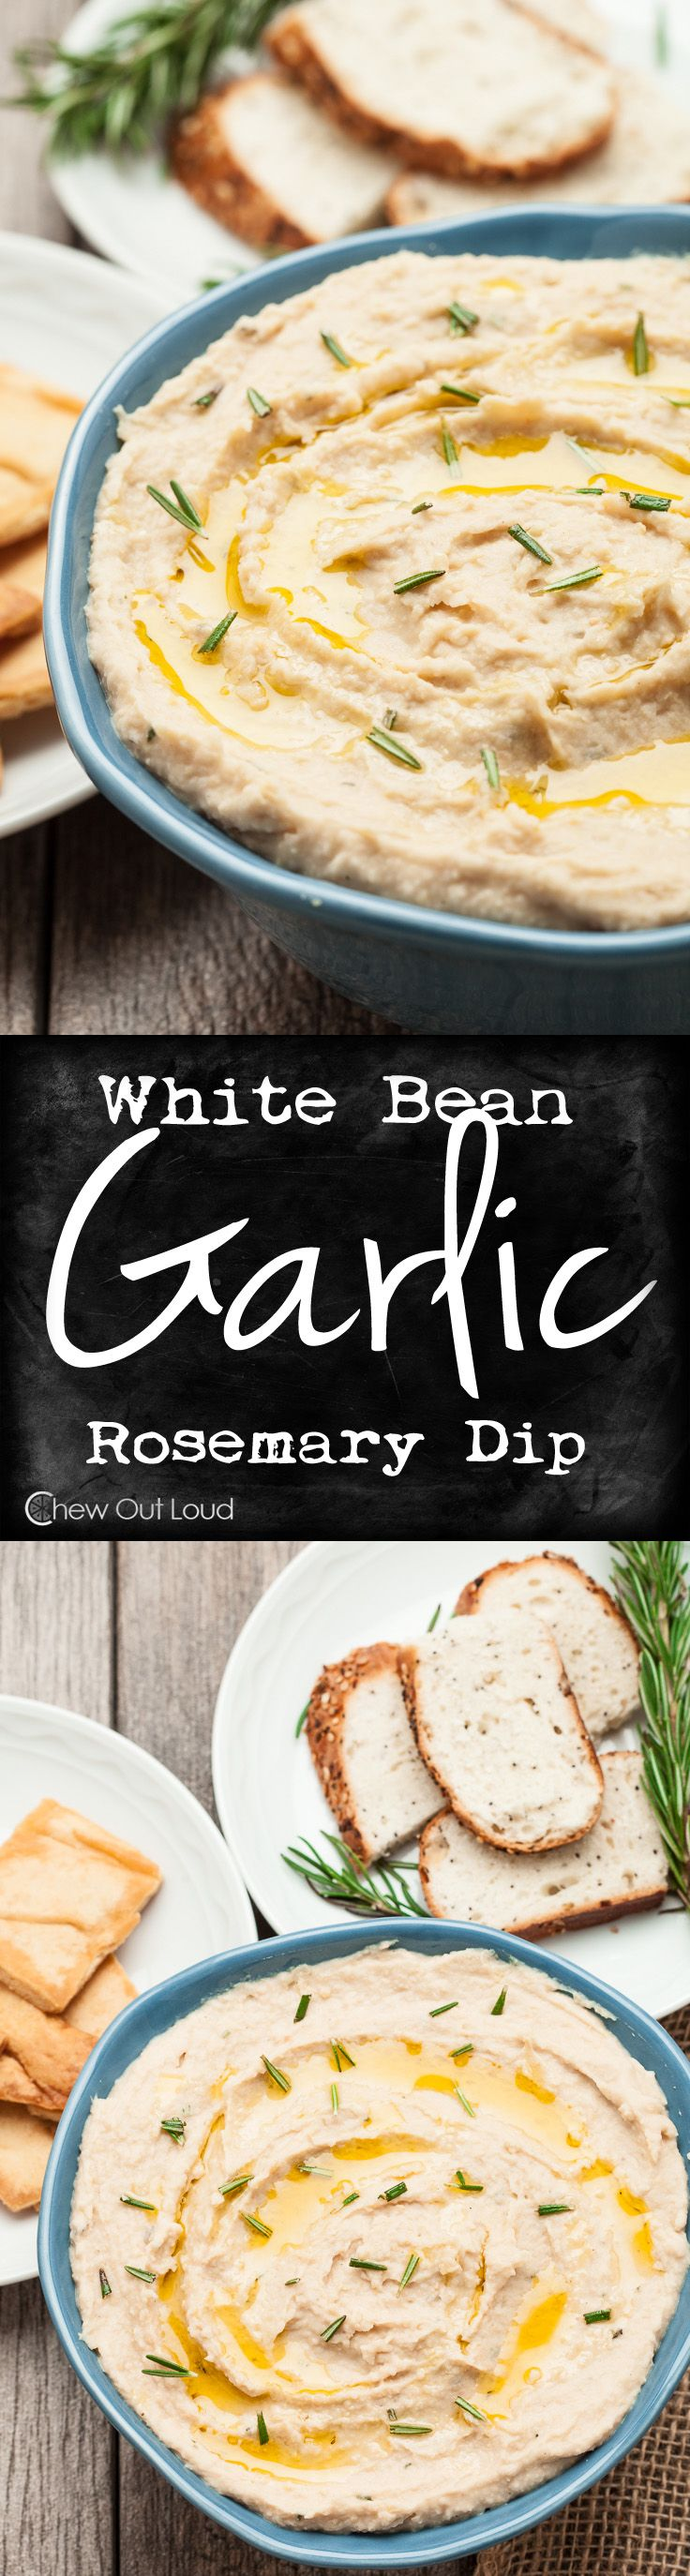 White Bean Garlic Dip - Smooth, creamy, healthy, and gluten-free. Guilt-free appetizer/snack for any party. Great as a sandwich spread, too. Garlic makes this white bean dip amazing! www.chewoutloud.com